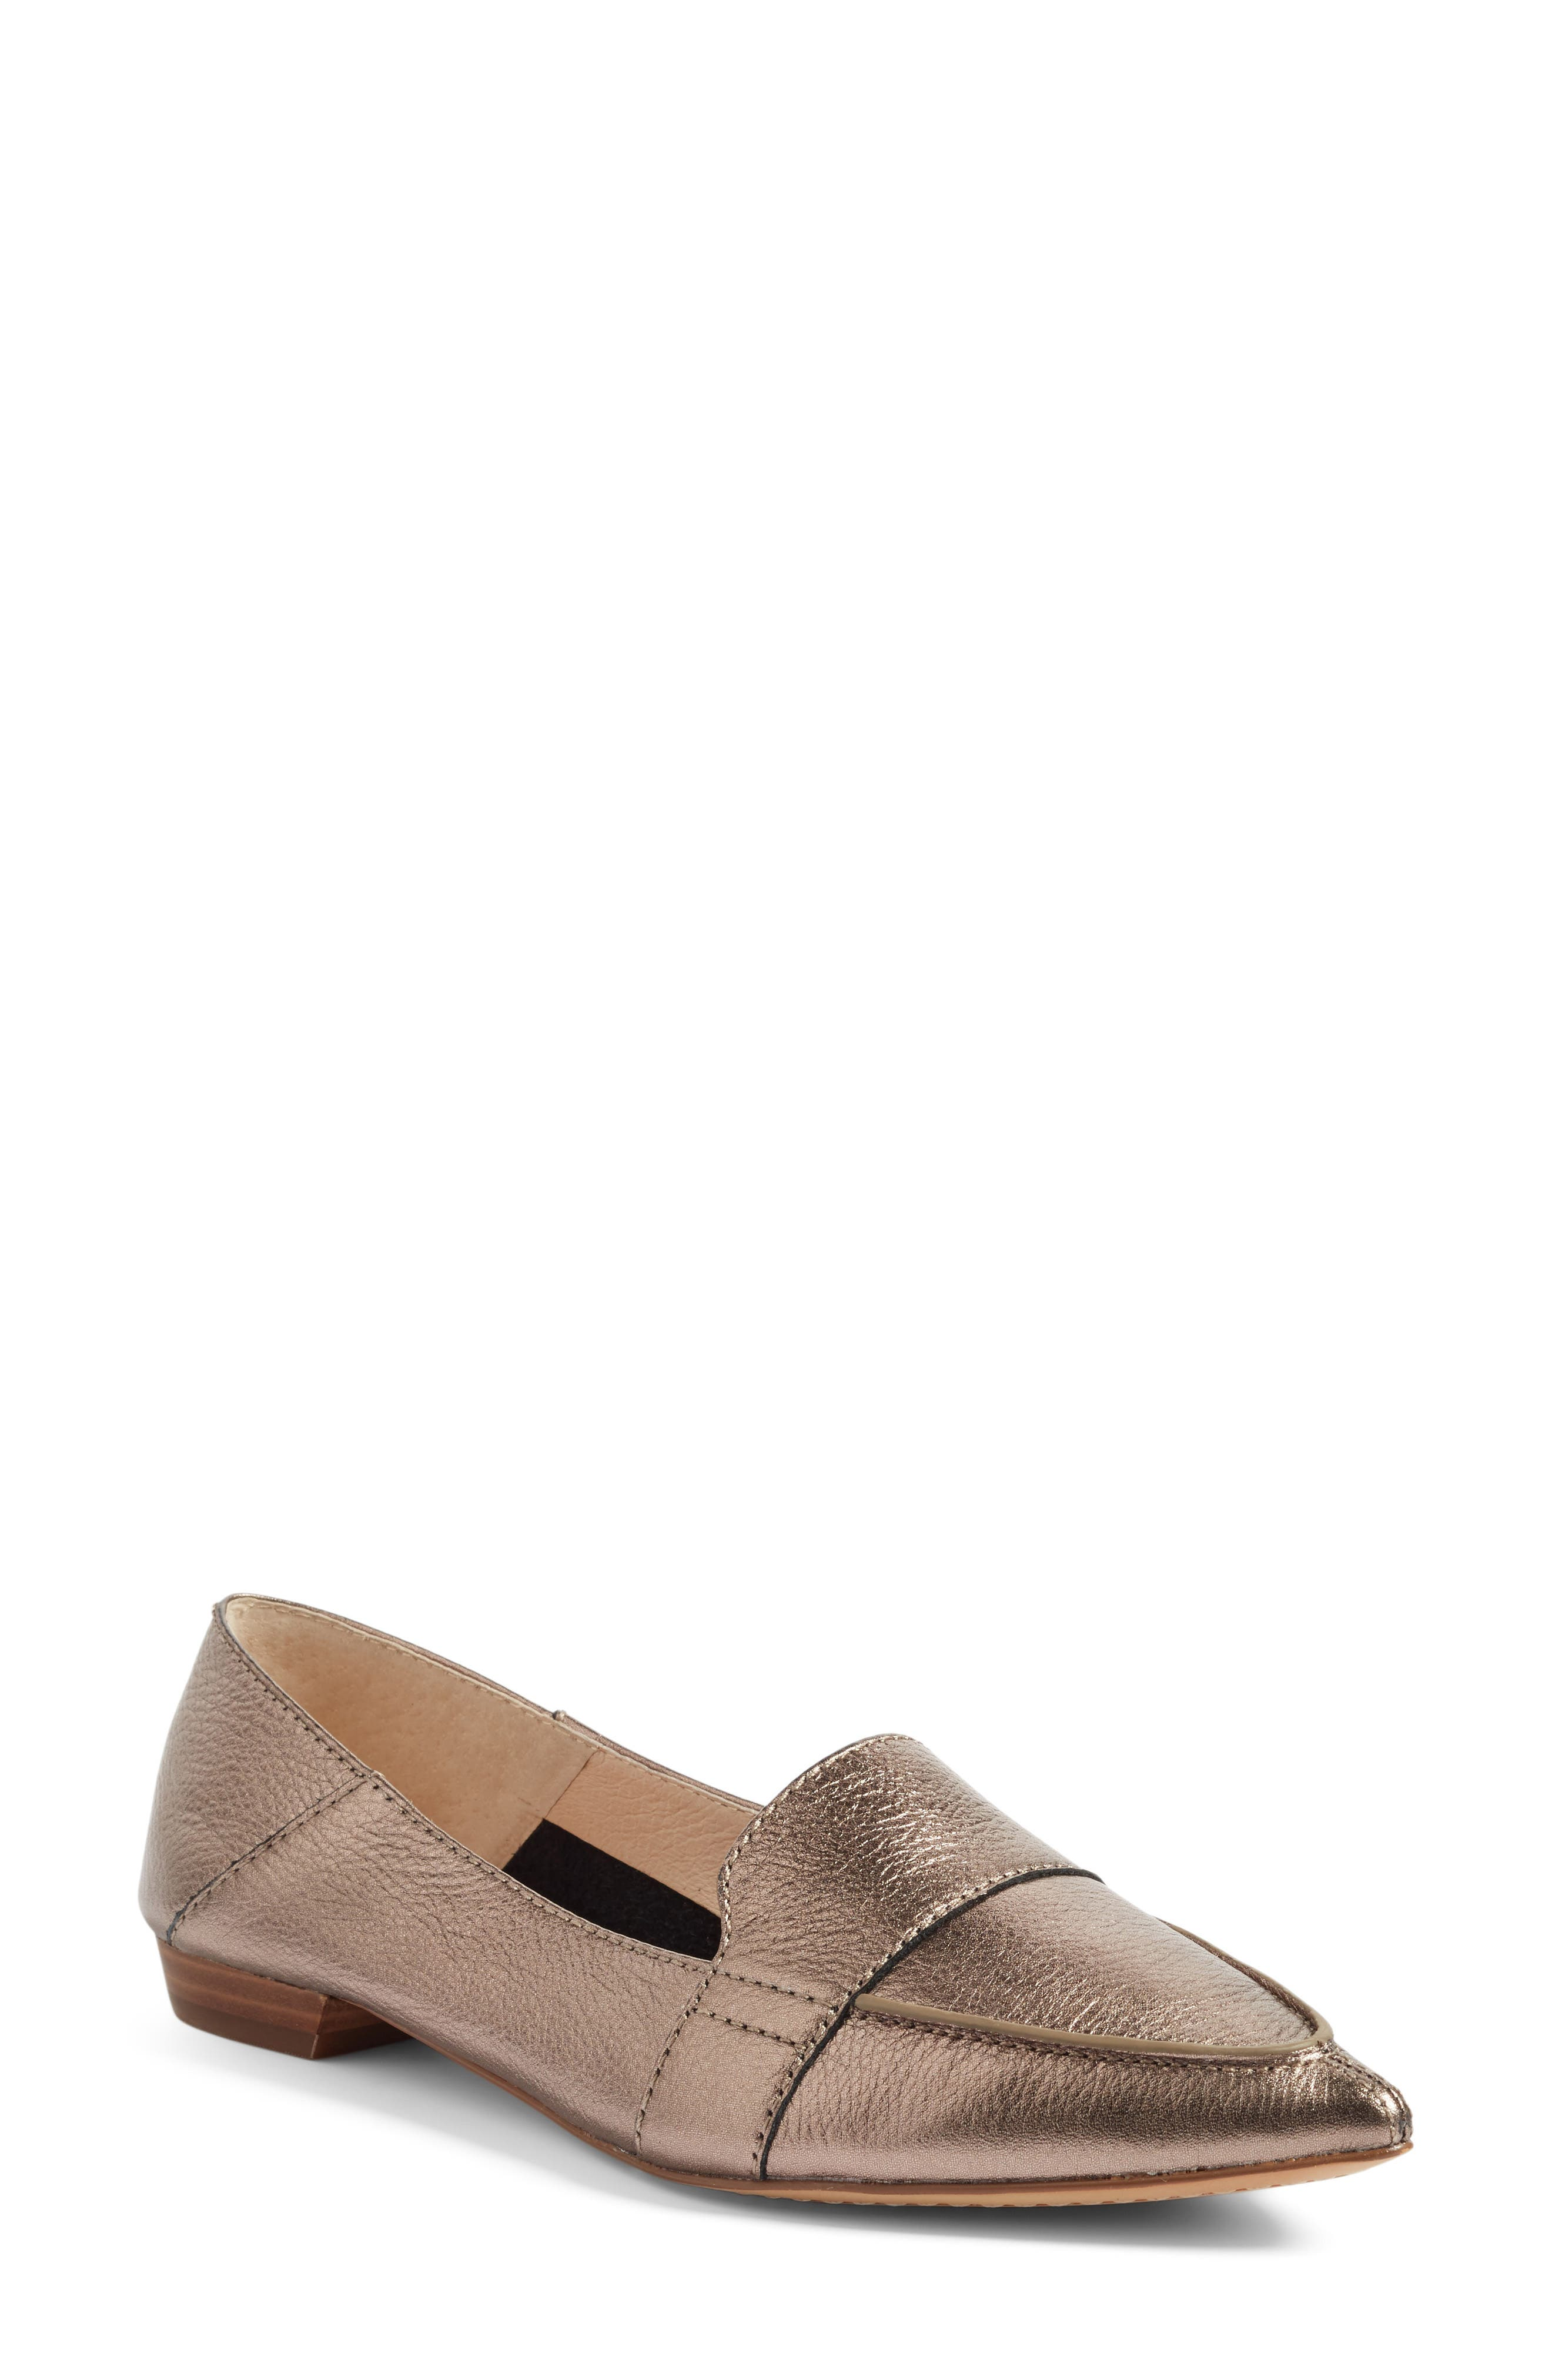 Alternate Image 1 Selected - Vince Camuto Maita Pointy Toe Flat (Women) (Nordstrom Exclusive)